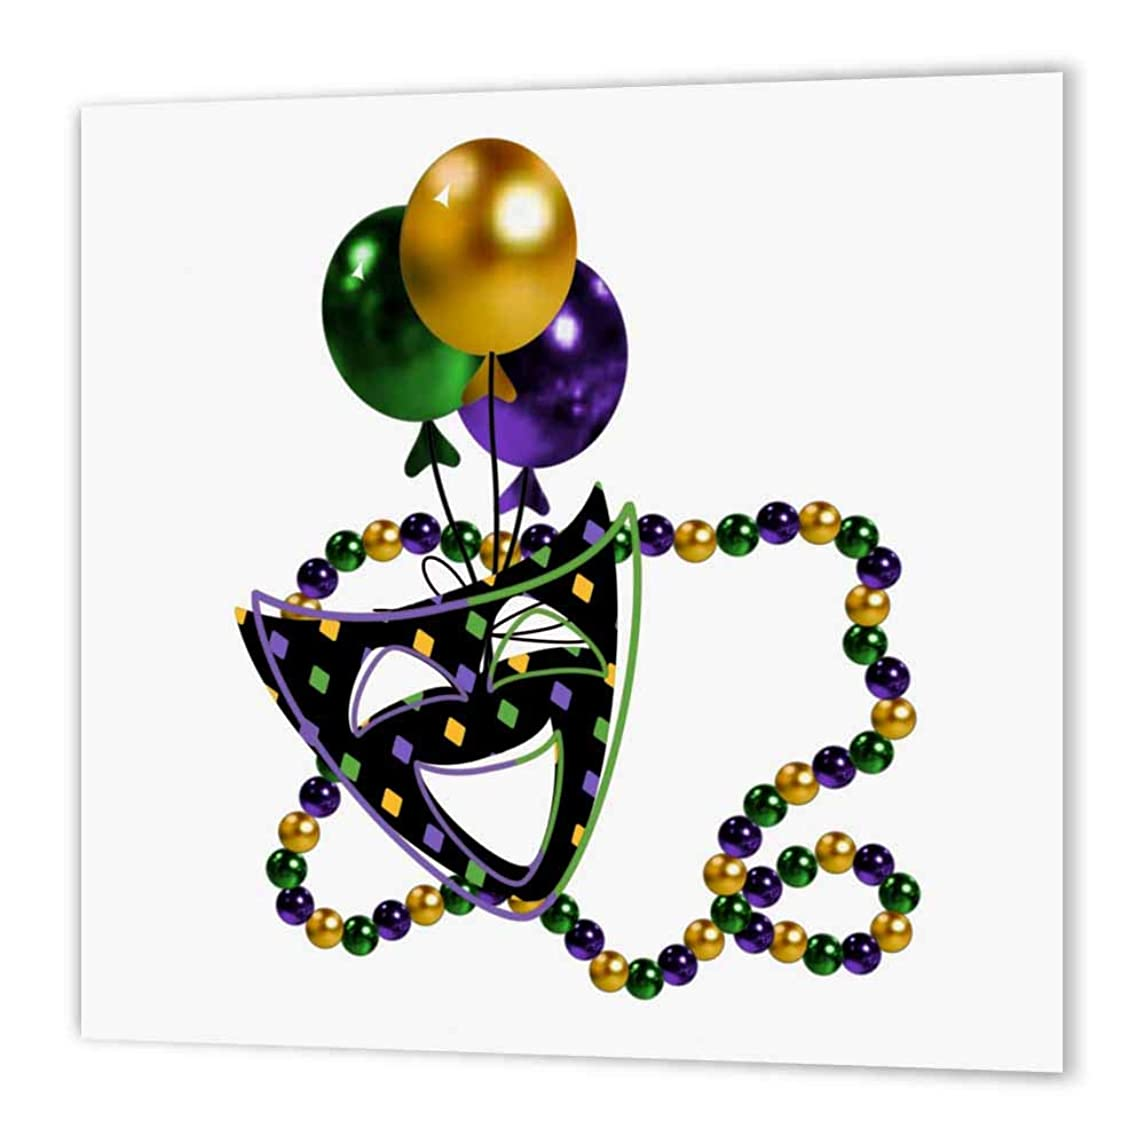 3dRose ht_45157_1 Mardi Gras Mask and Beads-Iron on Heat Transfer Paper for White Material, 8 by 8-Inch